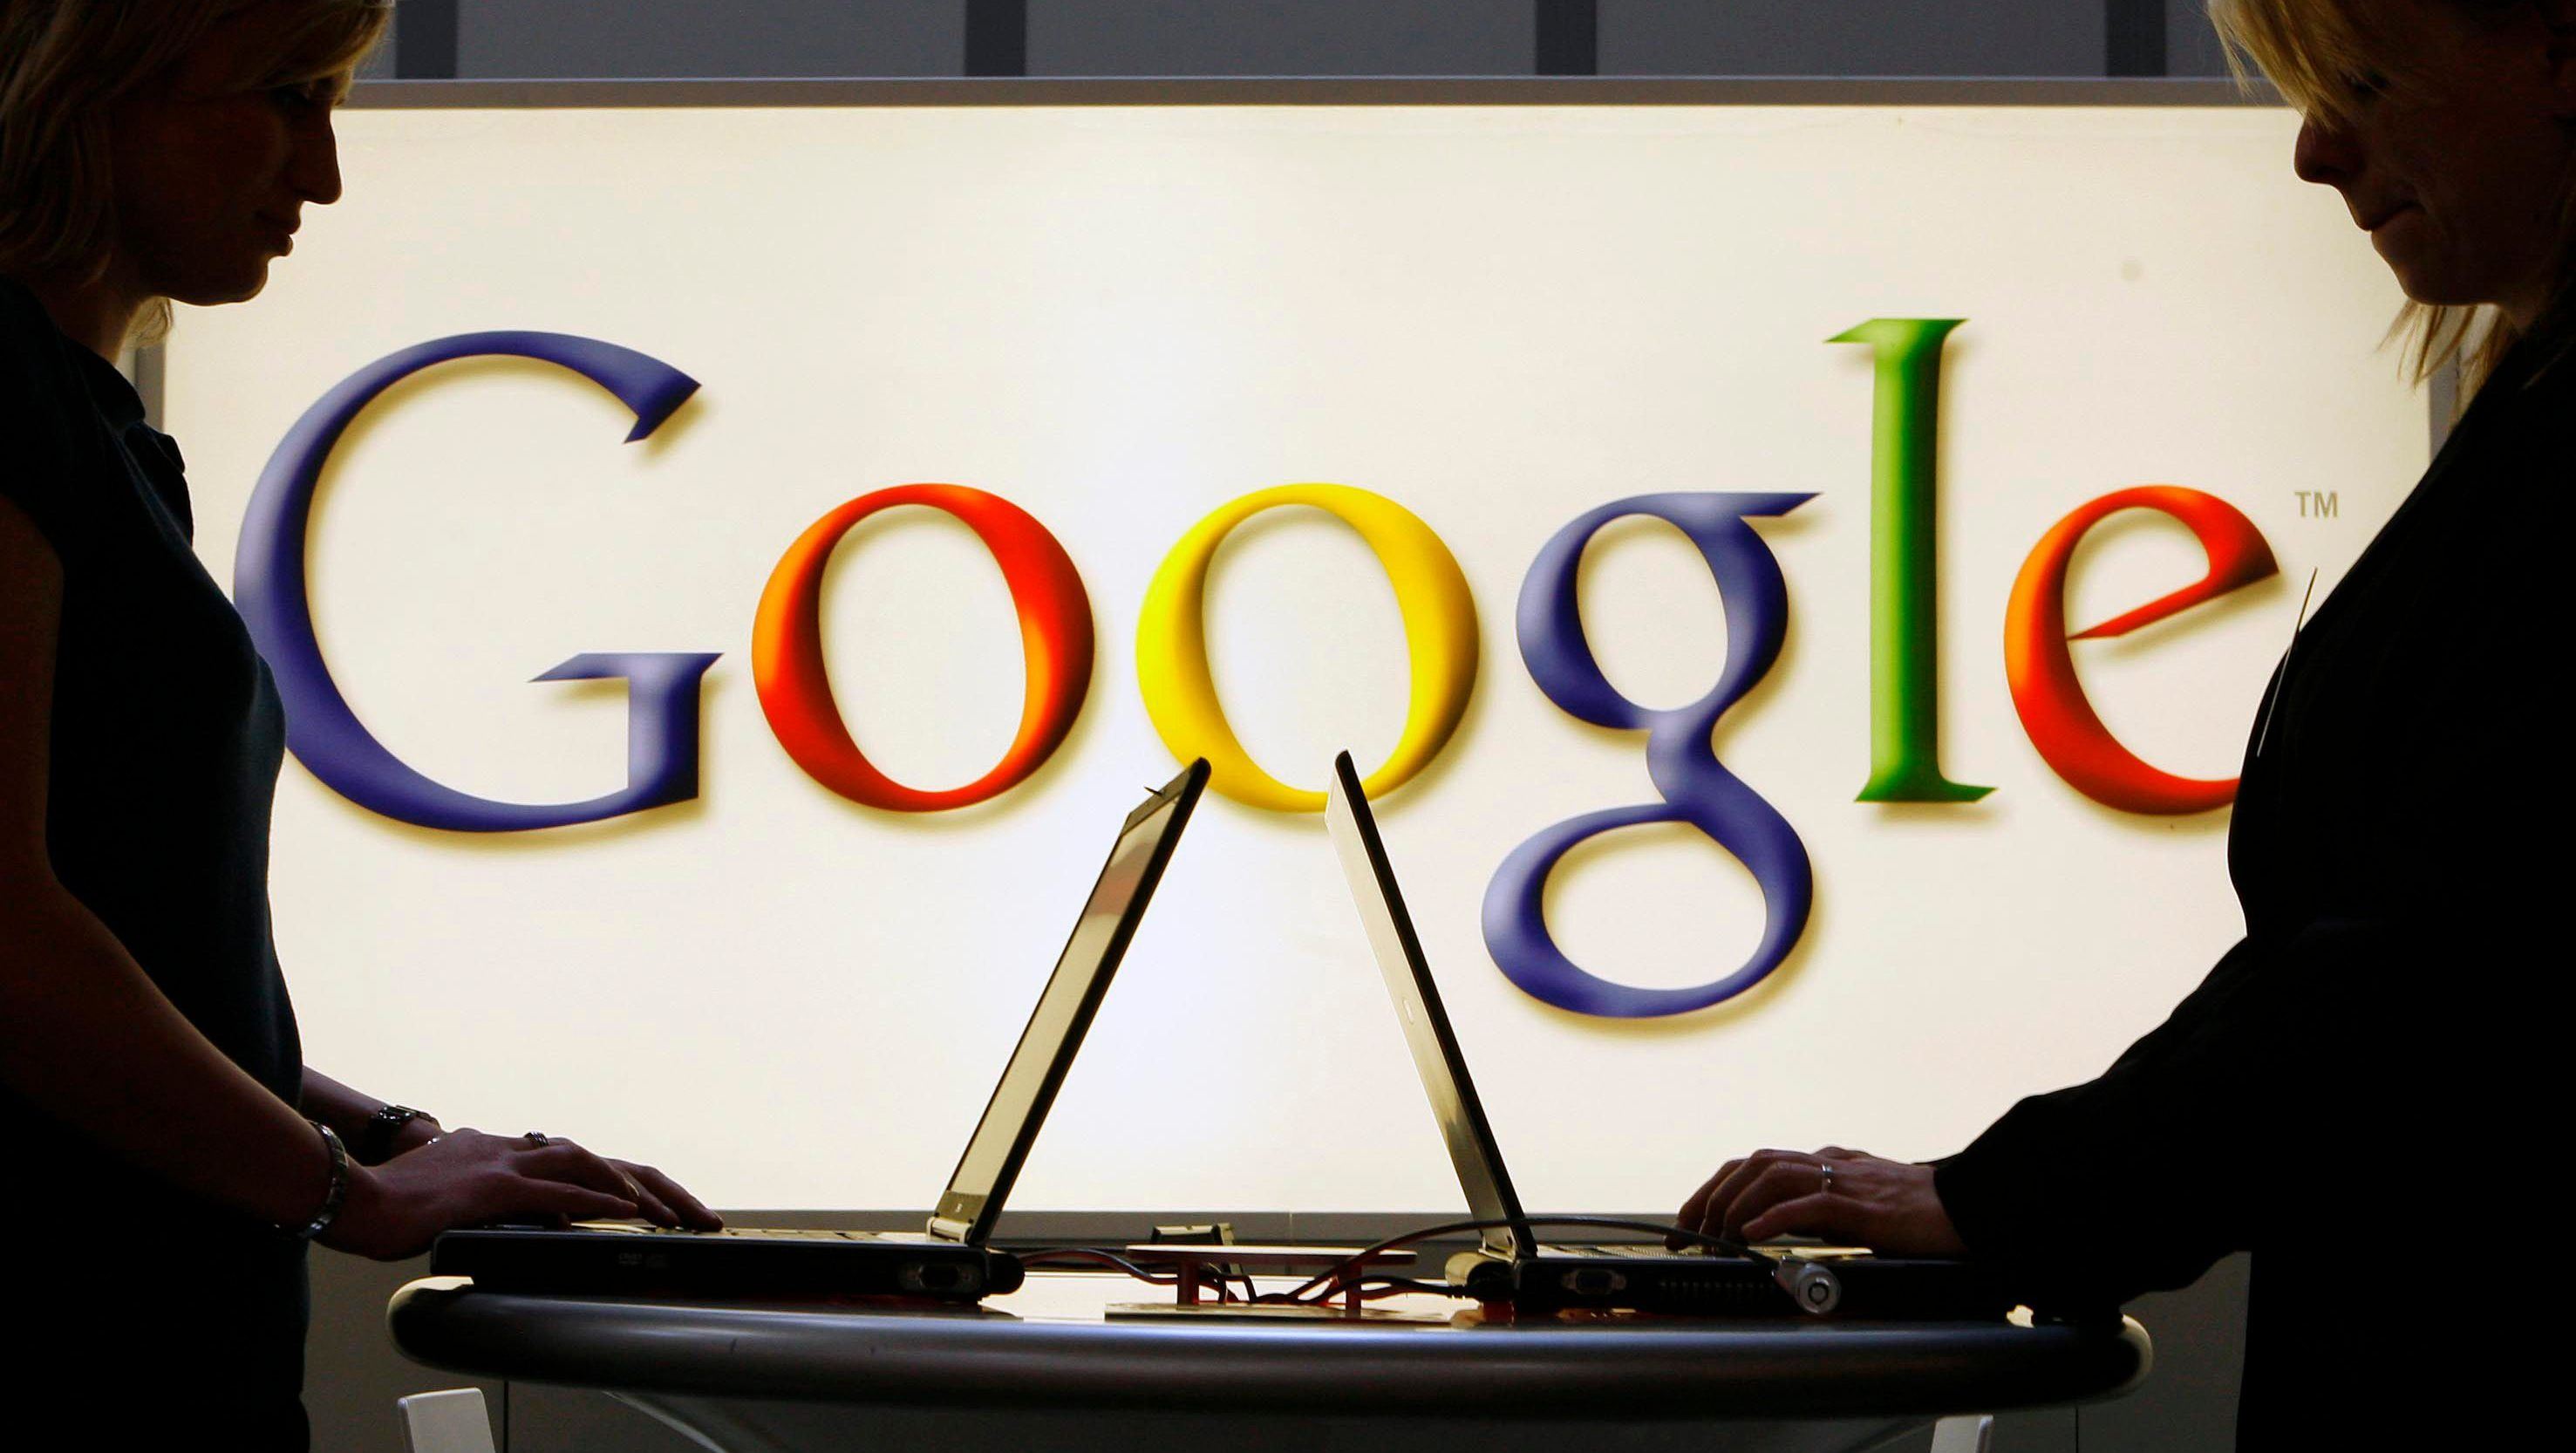 Google's search predictions for work-related queries are a tragedy